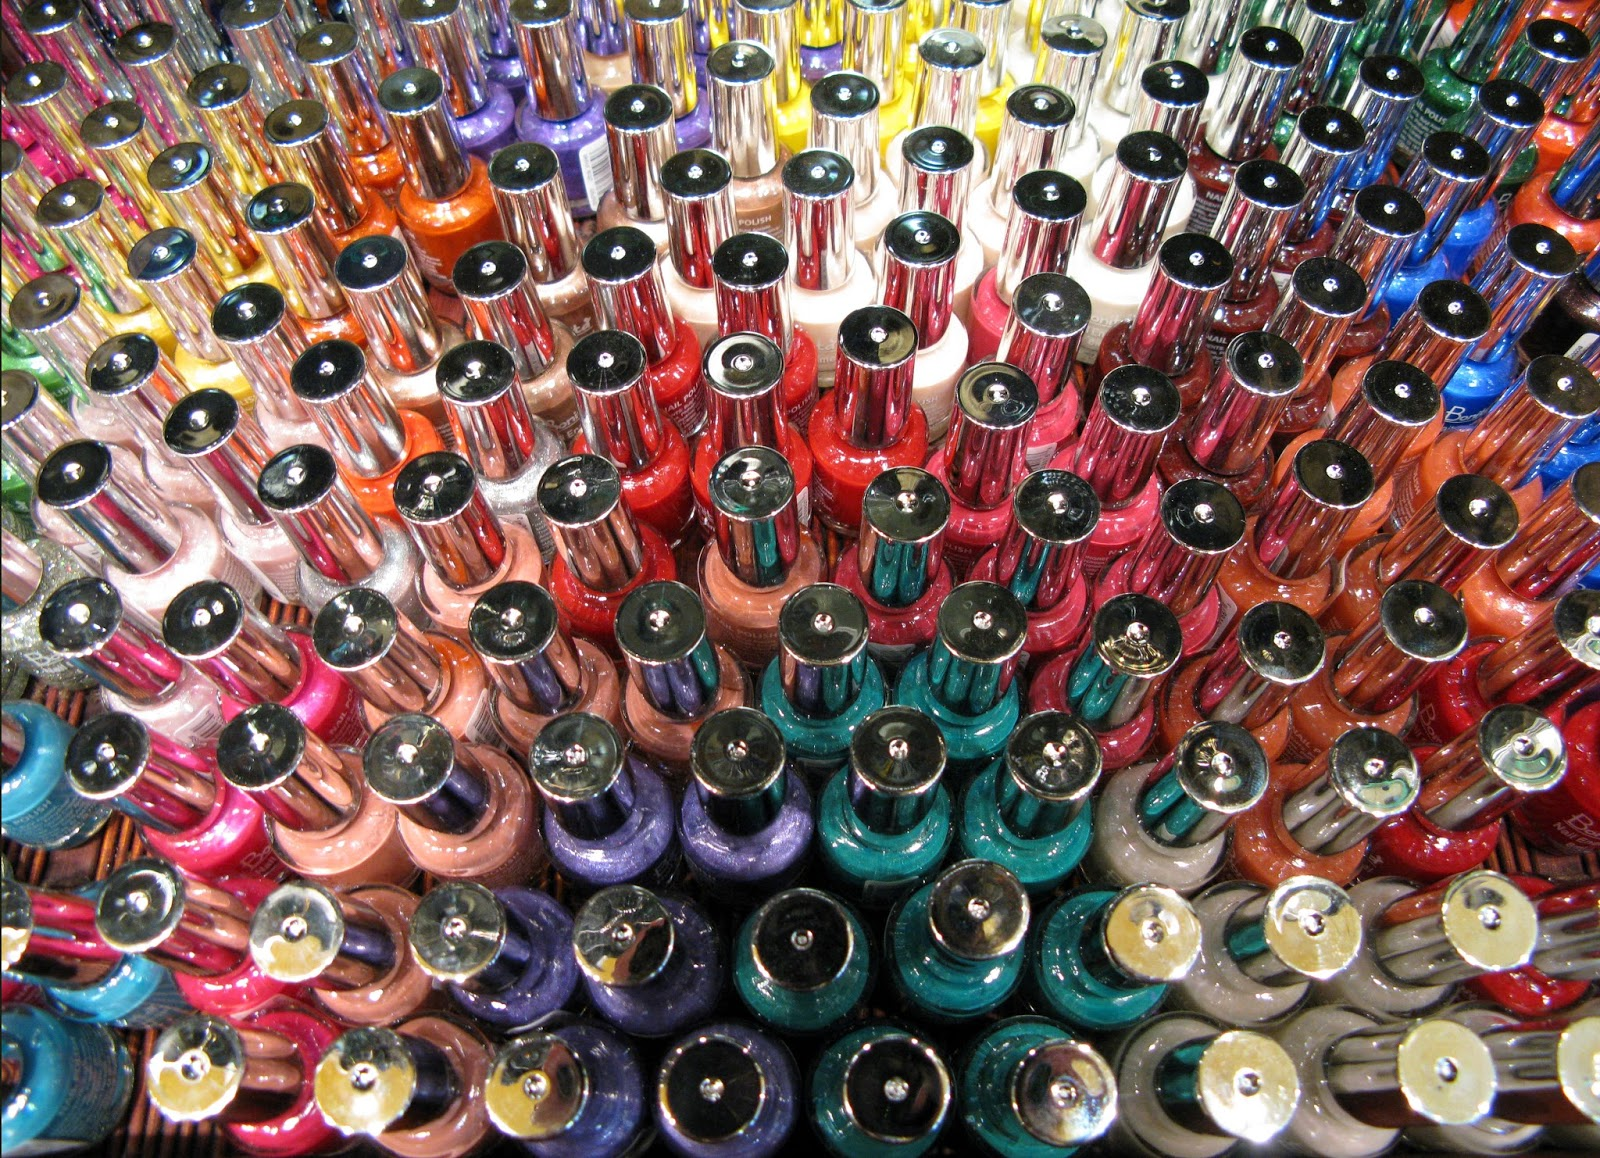 Nail Polish from rgbstock.com